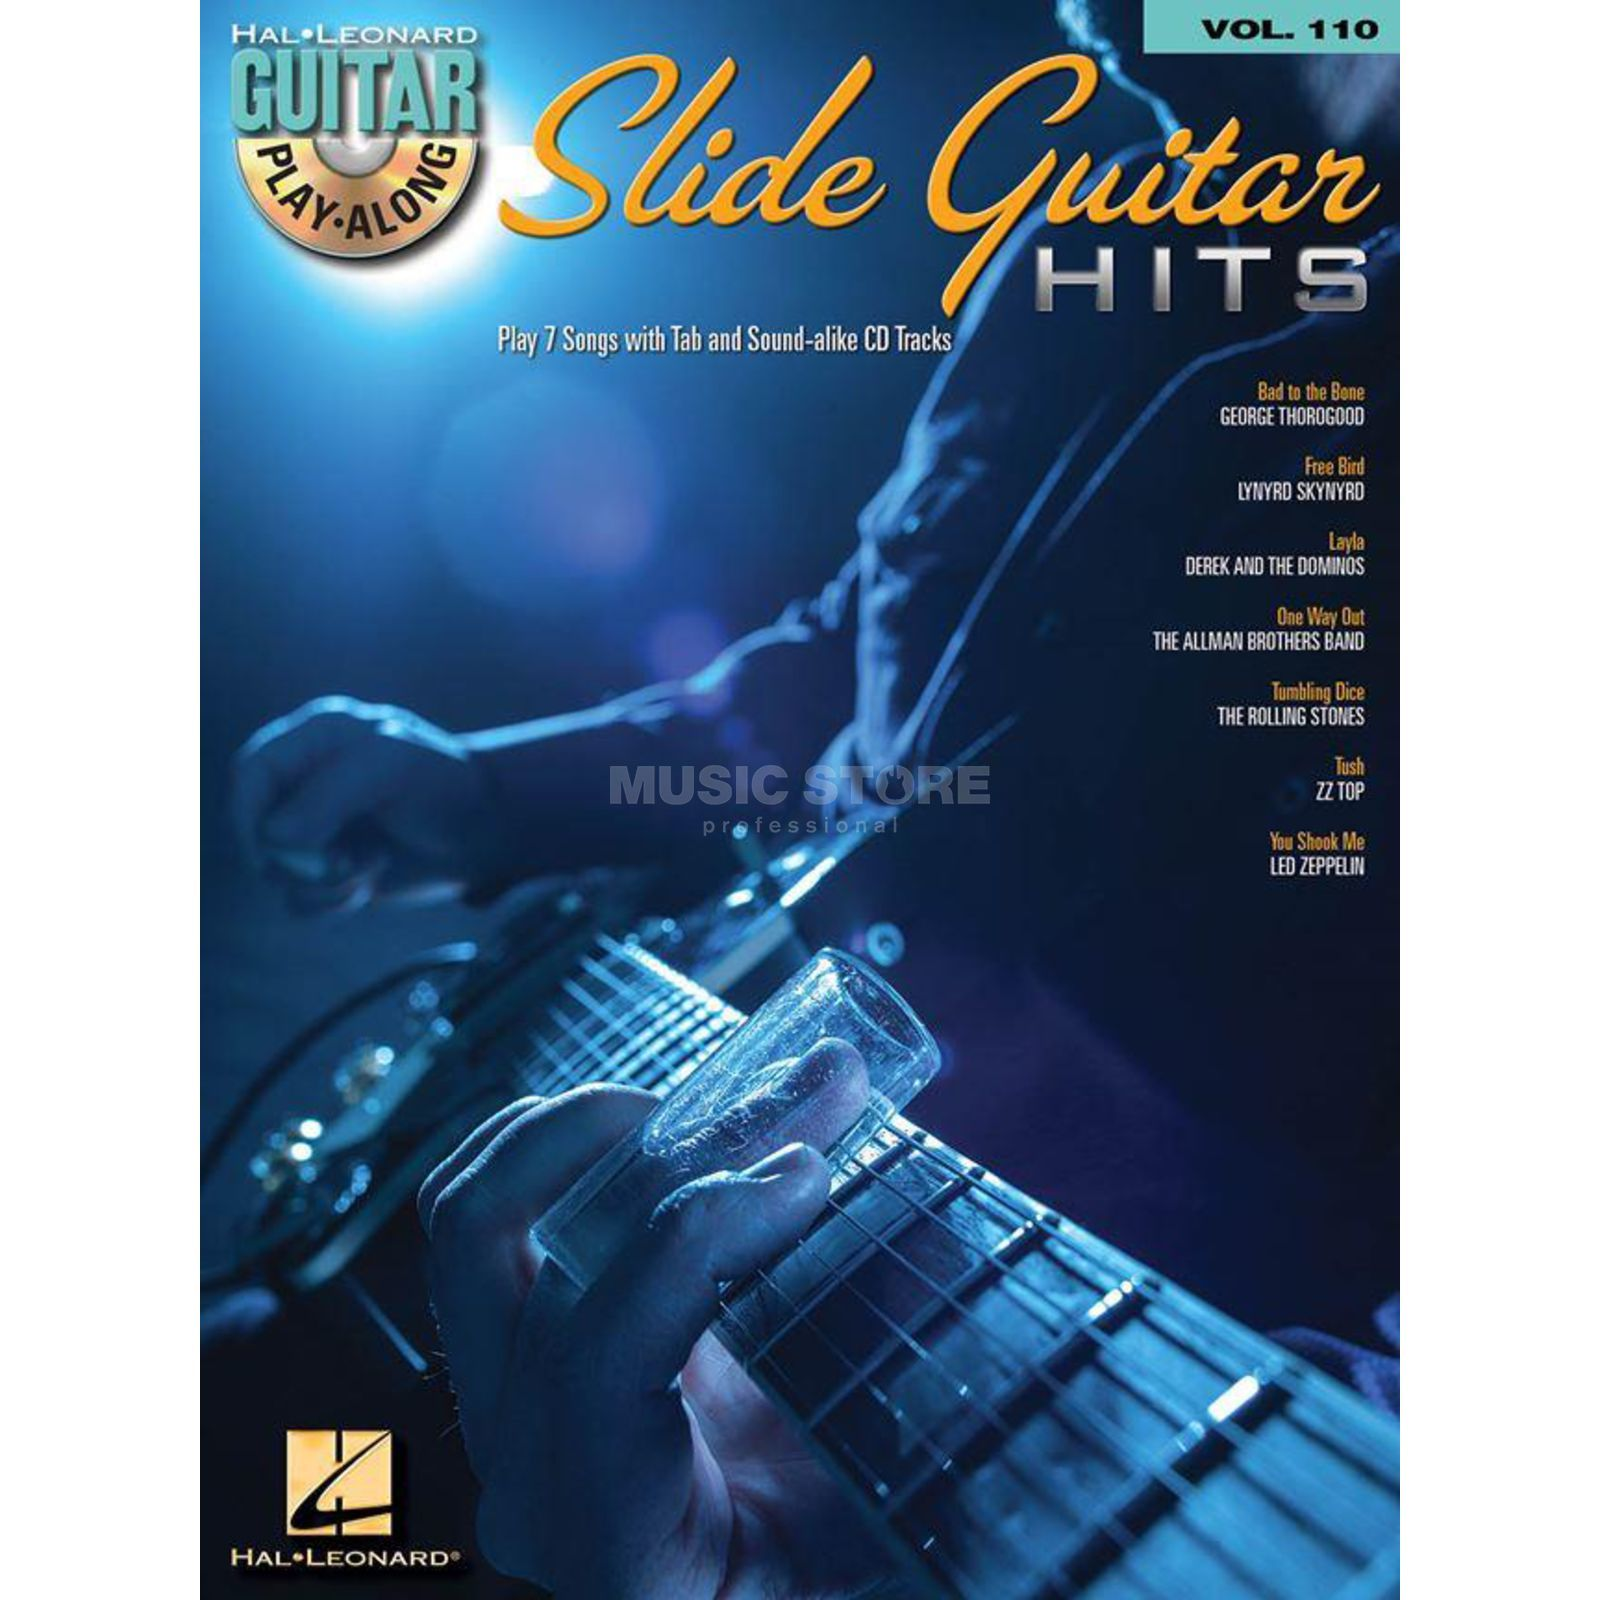 Hal Leonard Guitar Play-Along: Slide Guitar Hits Vol. 110, TAB und CD Produktbild